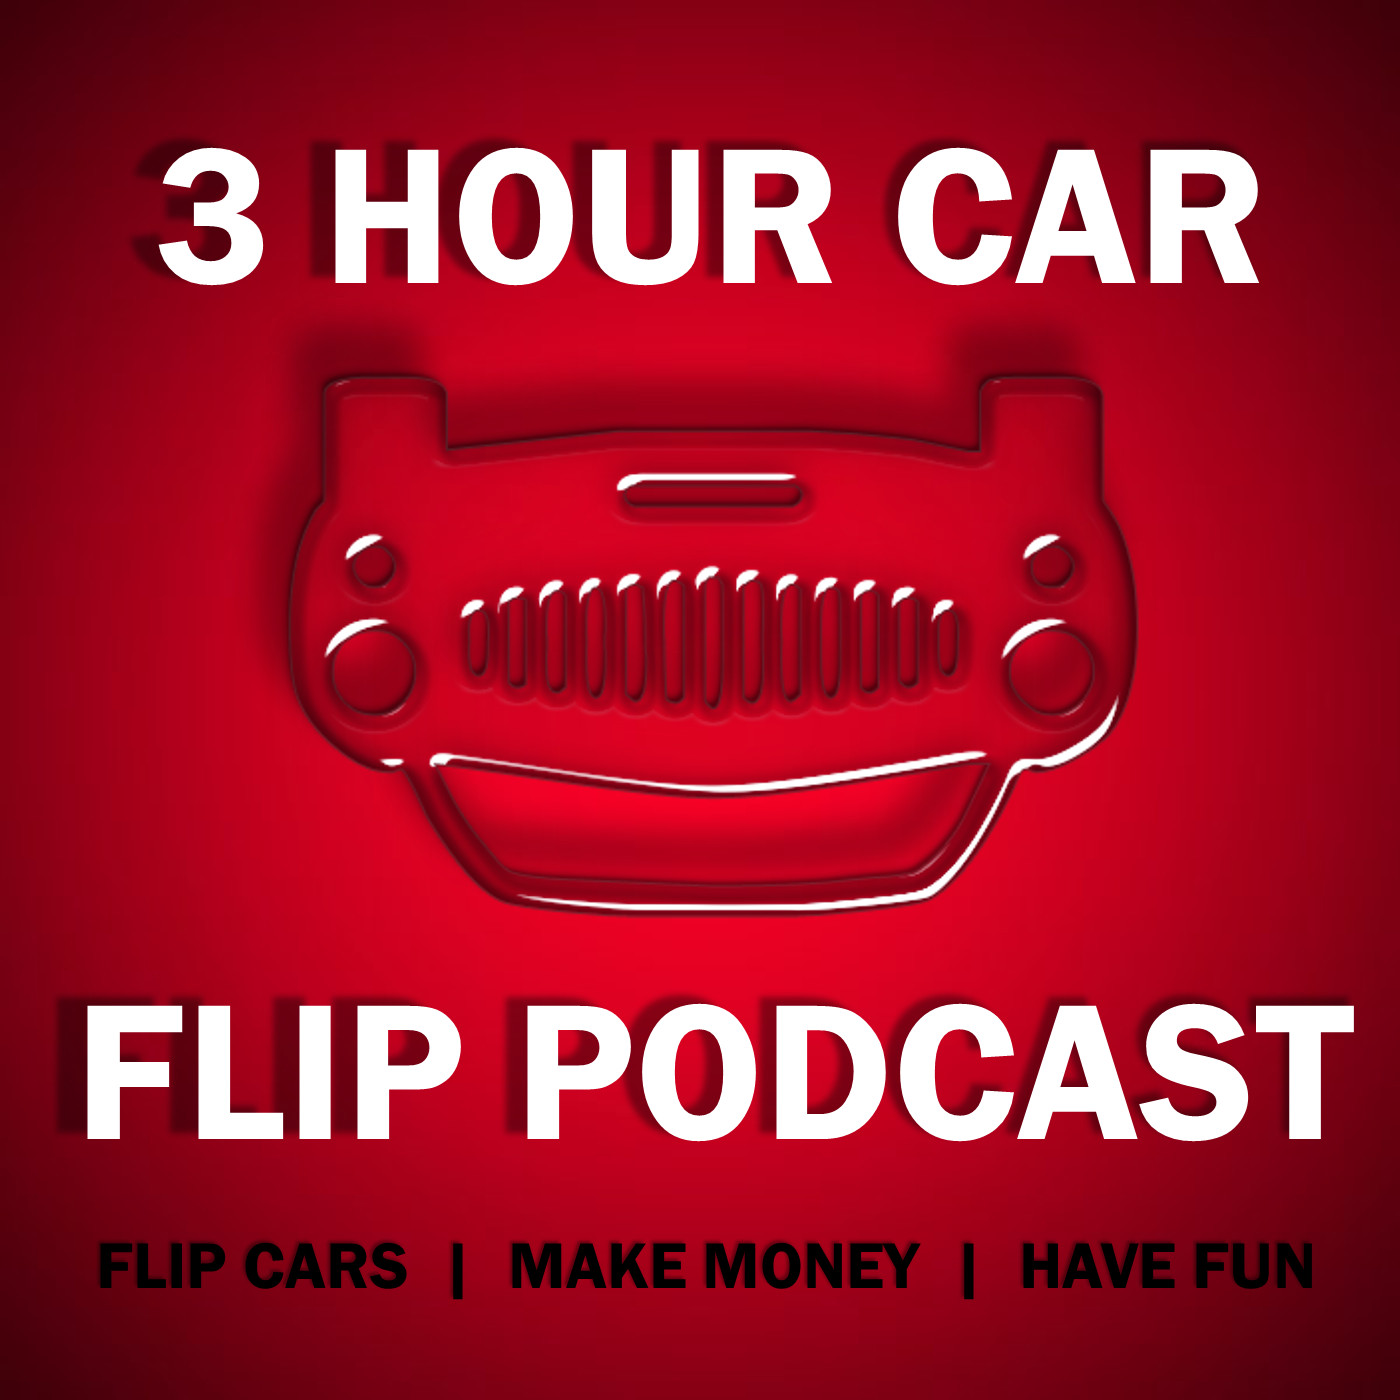 3 Hour Car Flip Podcast